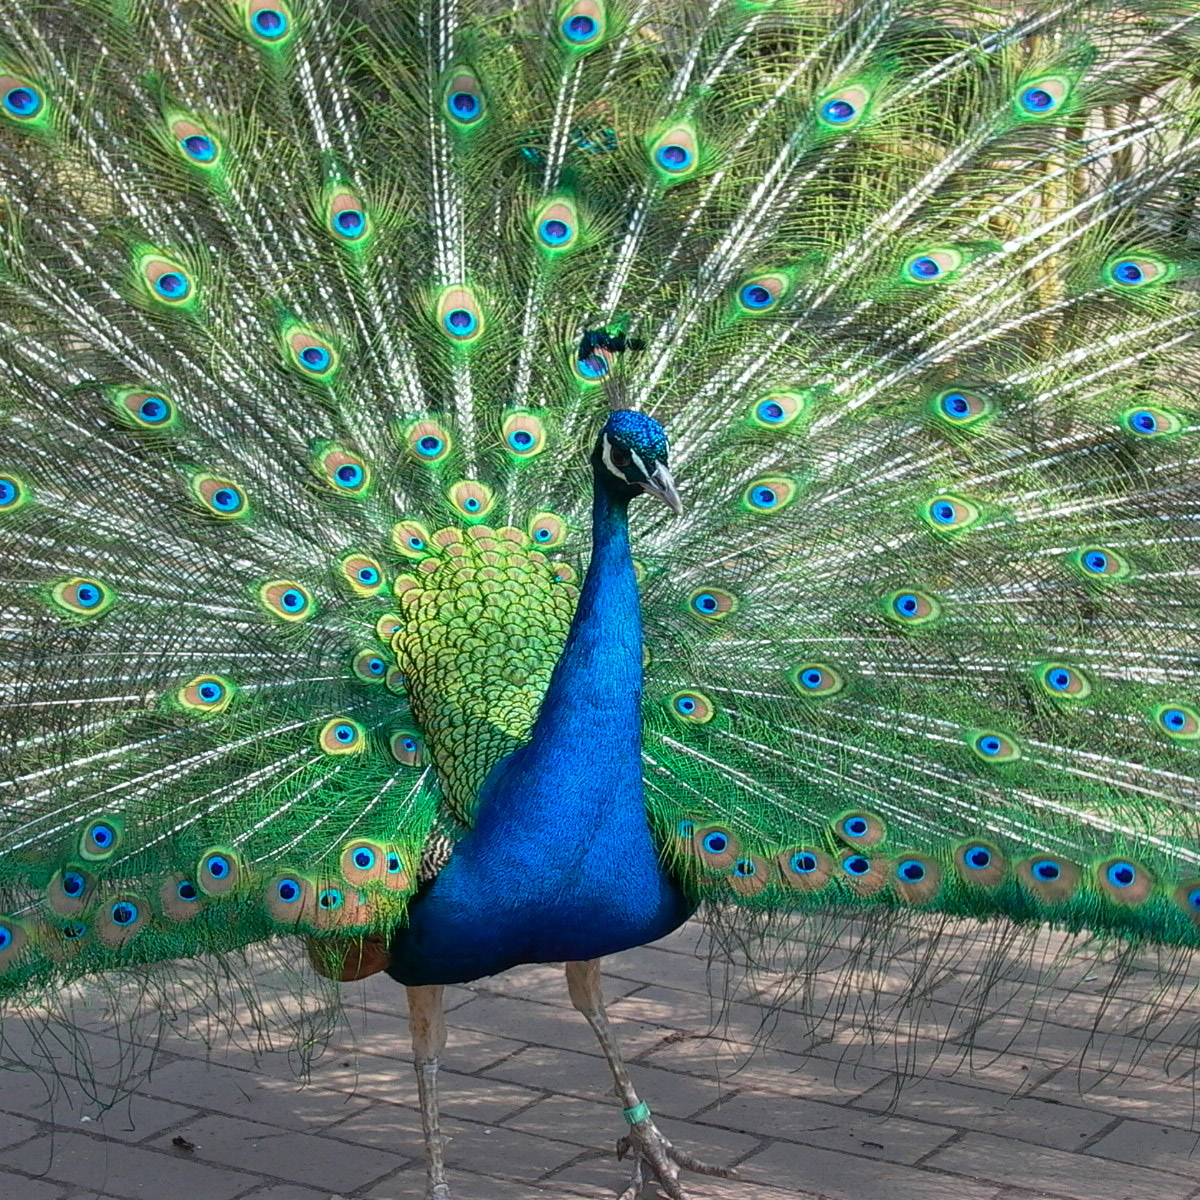 peacock photo transformational goal clarity coaching cheltenham gloucestershire